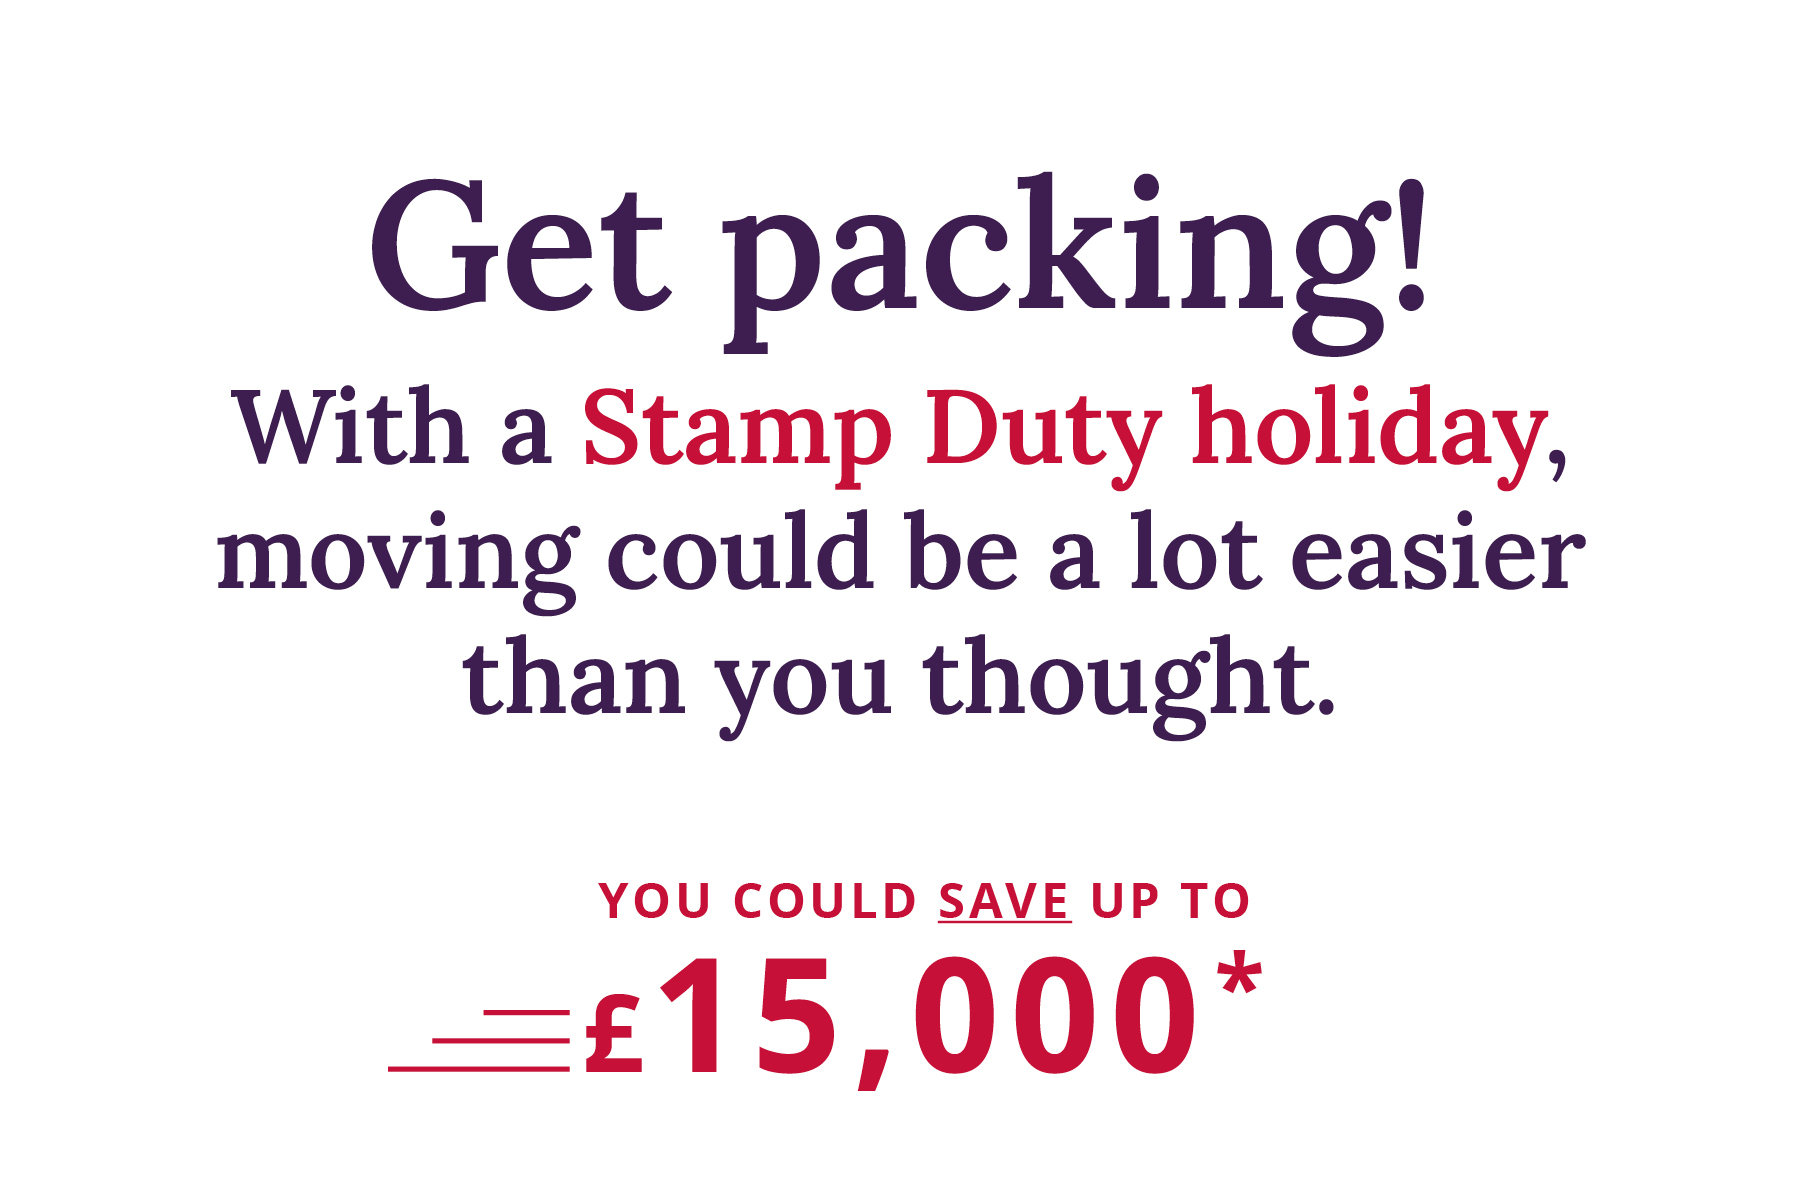 Stamp duty holiday - TW Carousel graphic